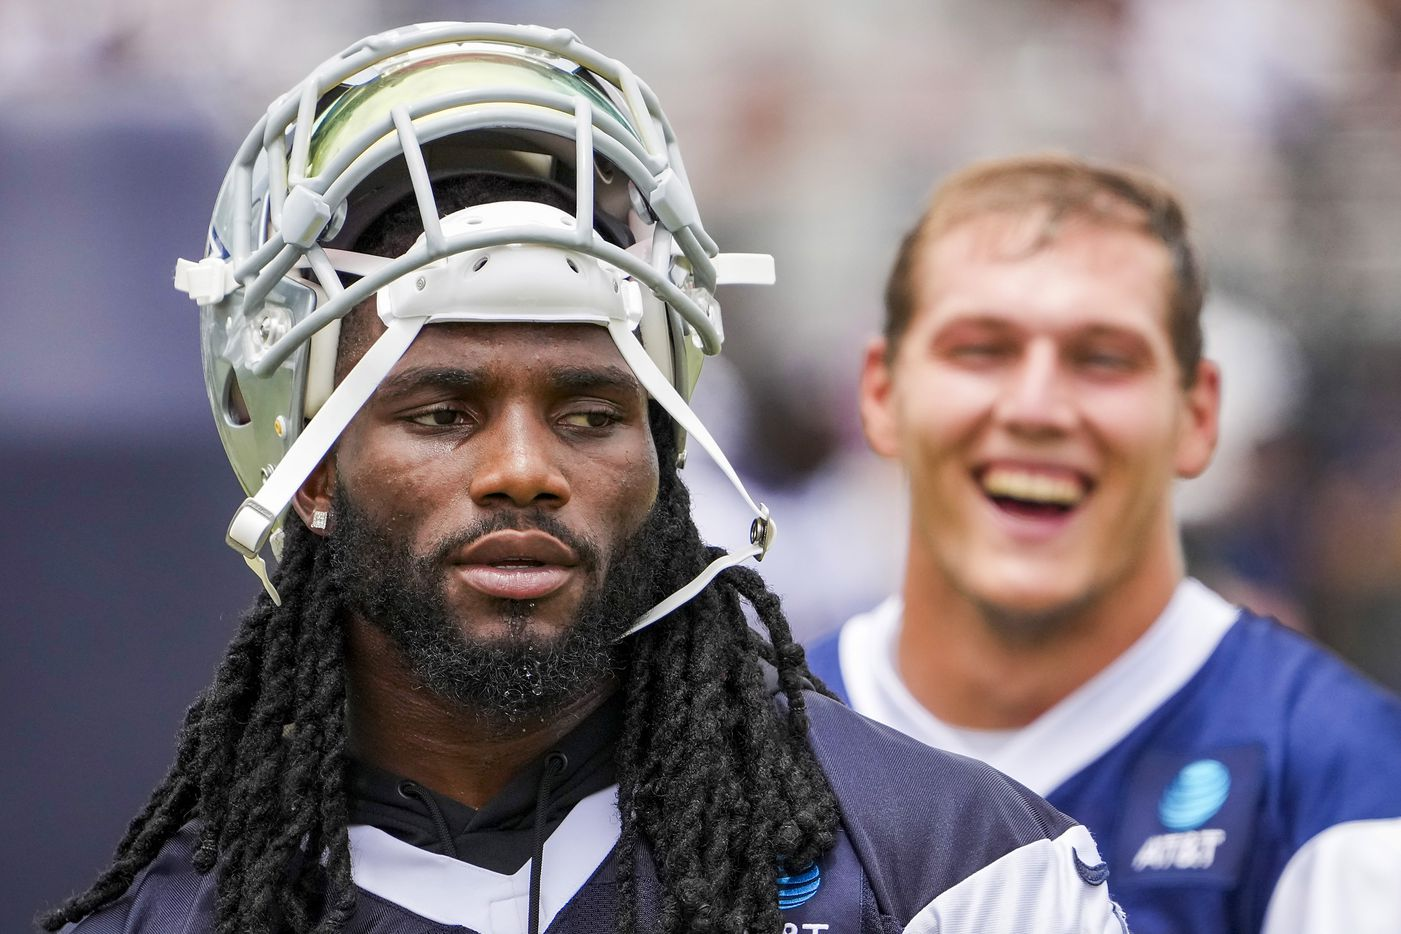 Dallas Cowboys linebacker Jaylon Smith (9) and linebacker Leighton Vander Esch (55) watch a drill during a practice at training camp on Saturday, July 24, 2021, in Oxnard, Calif.